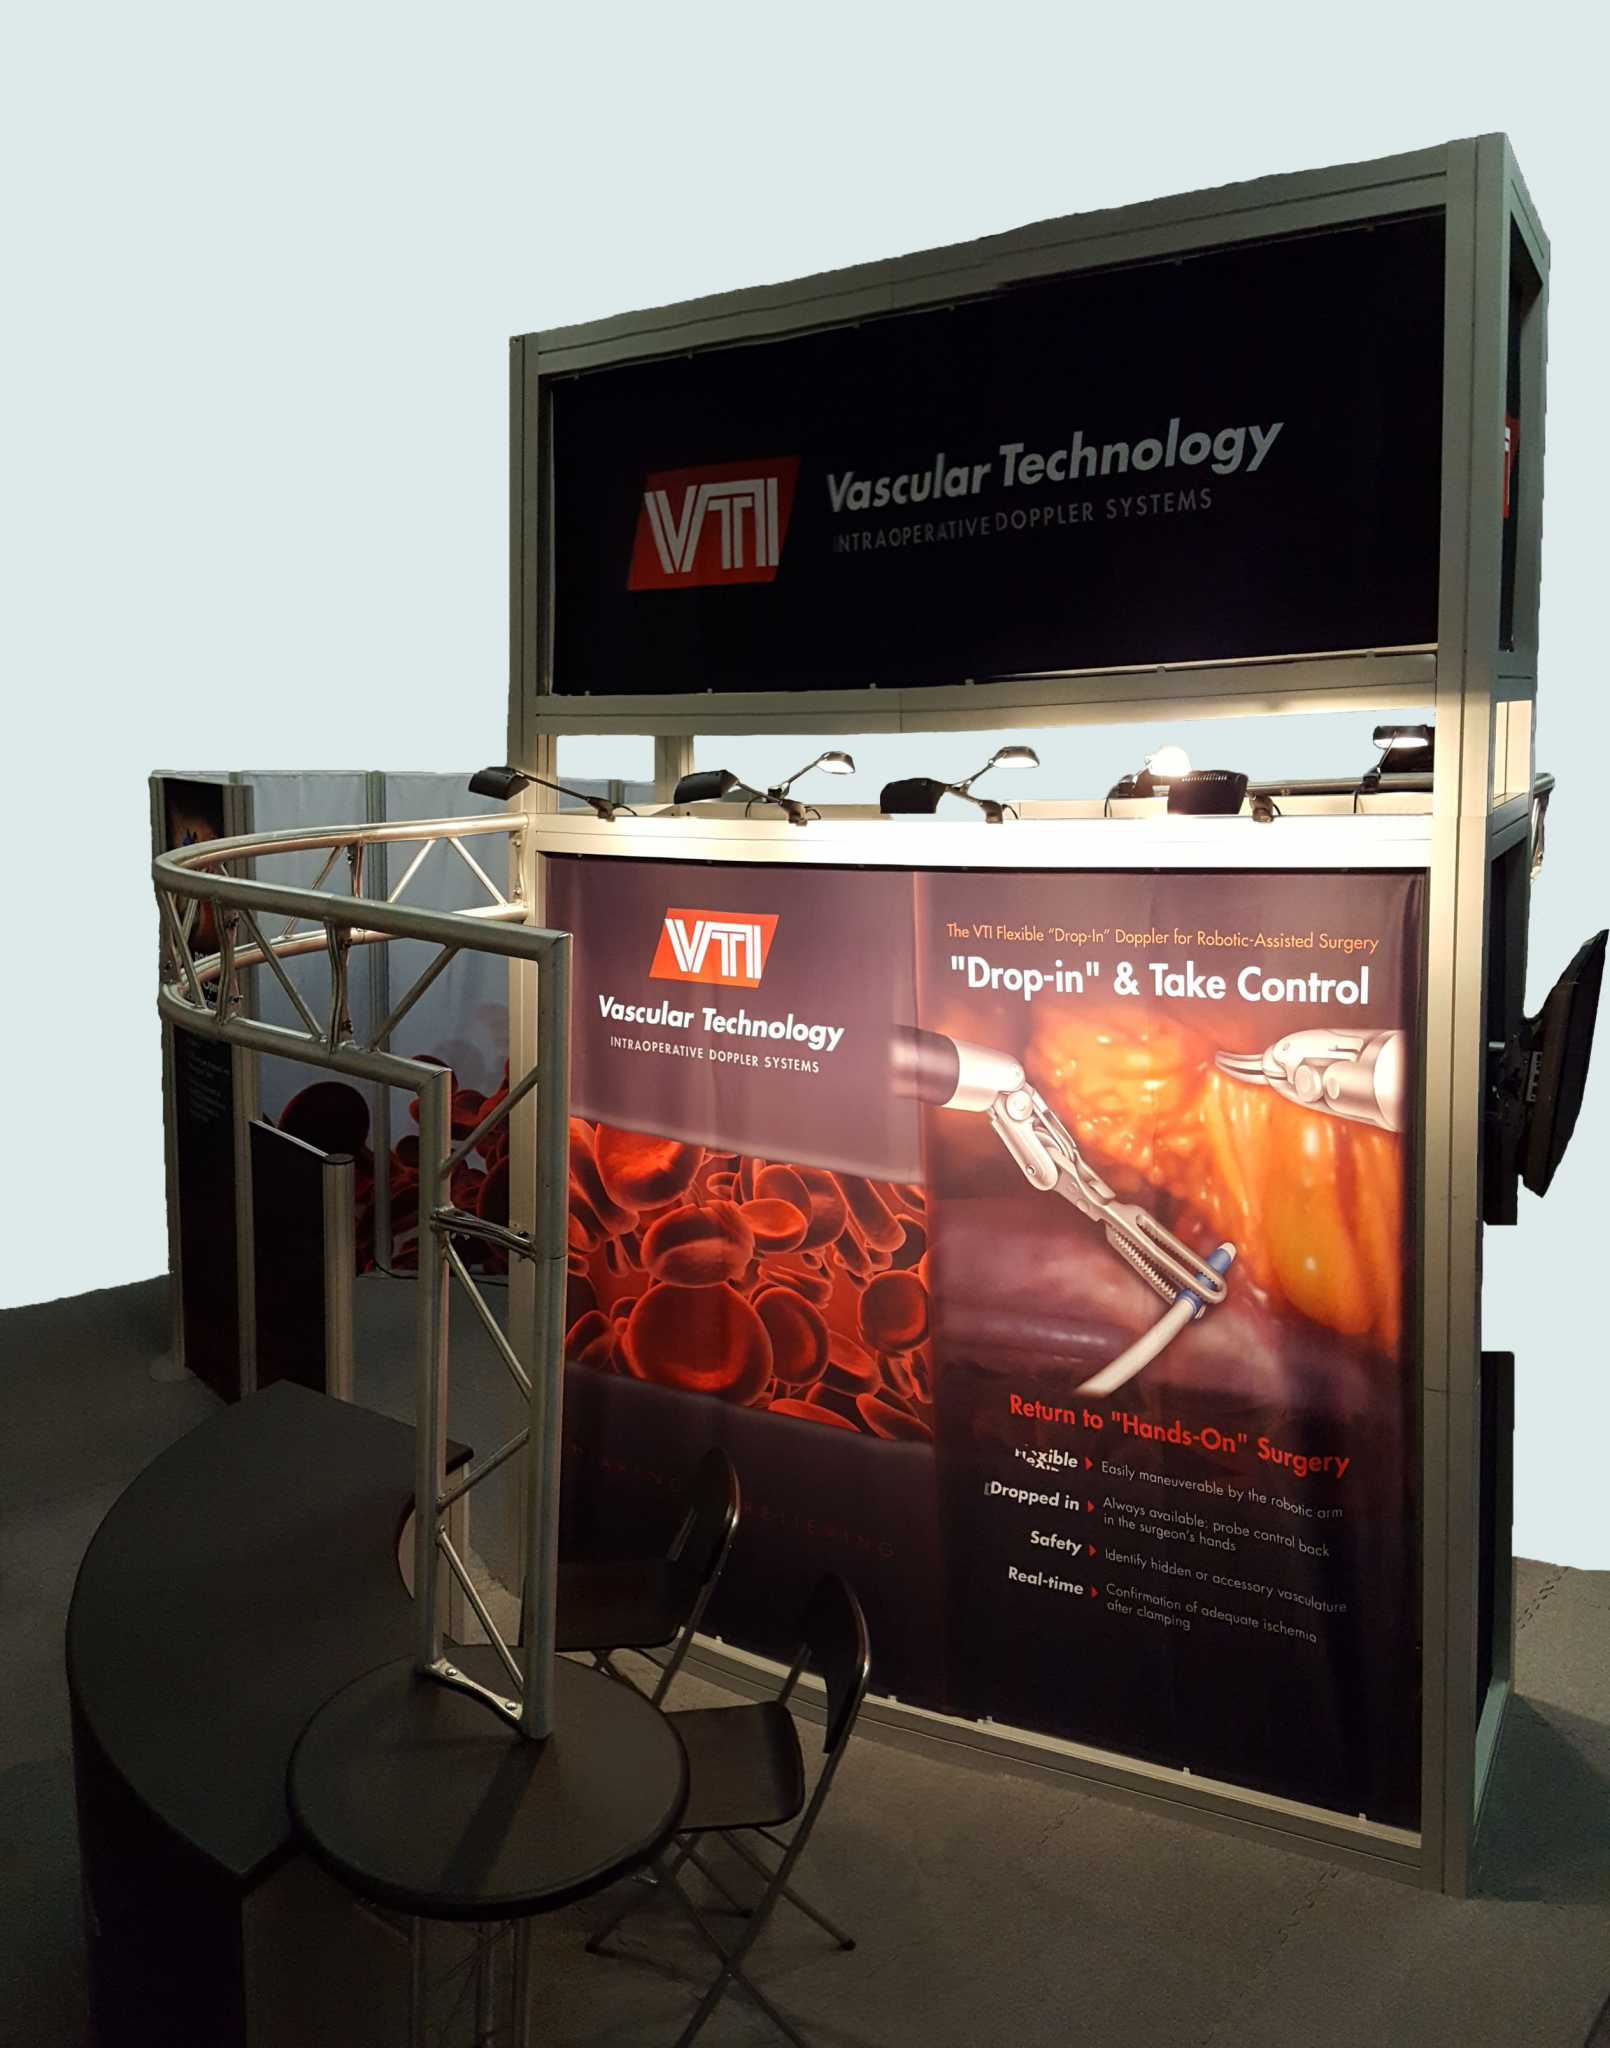 The trade show display is an island design, branded on all sides with dye-sub fabric graphics stretched between aluminum extrusions.